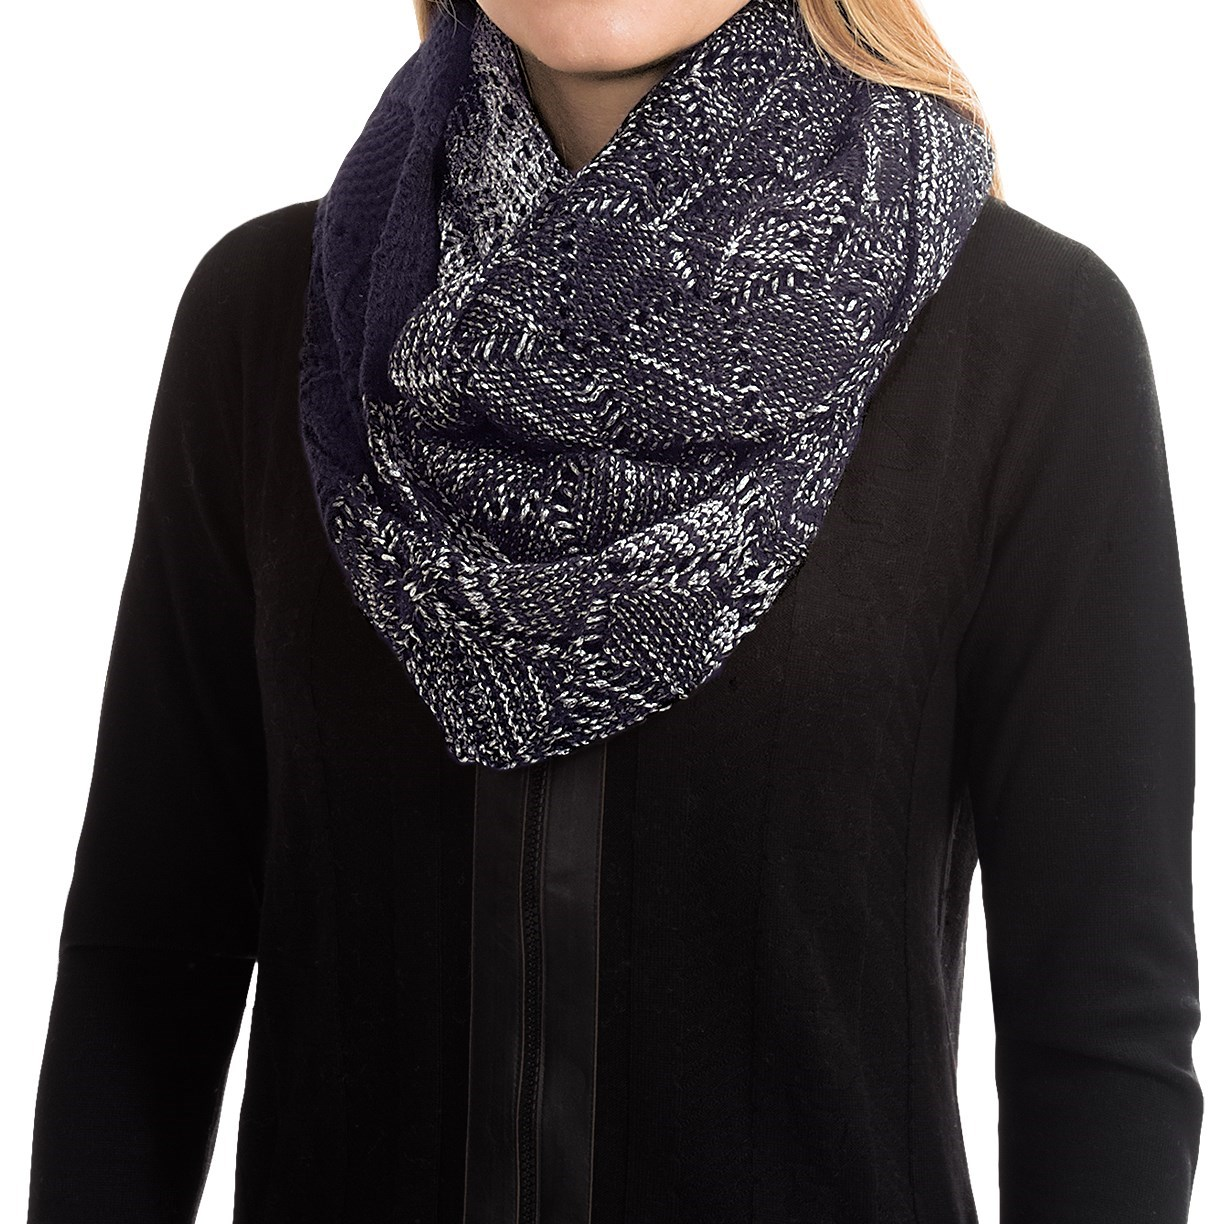 Laundry By Design Slouchy Pointelle Ombre Infinity Scarf